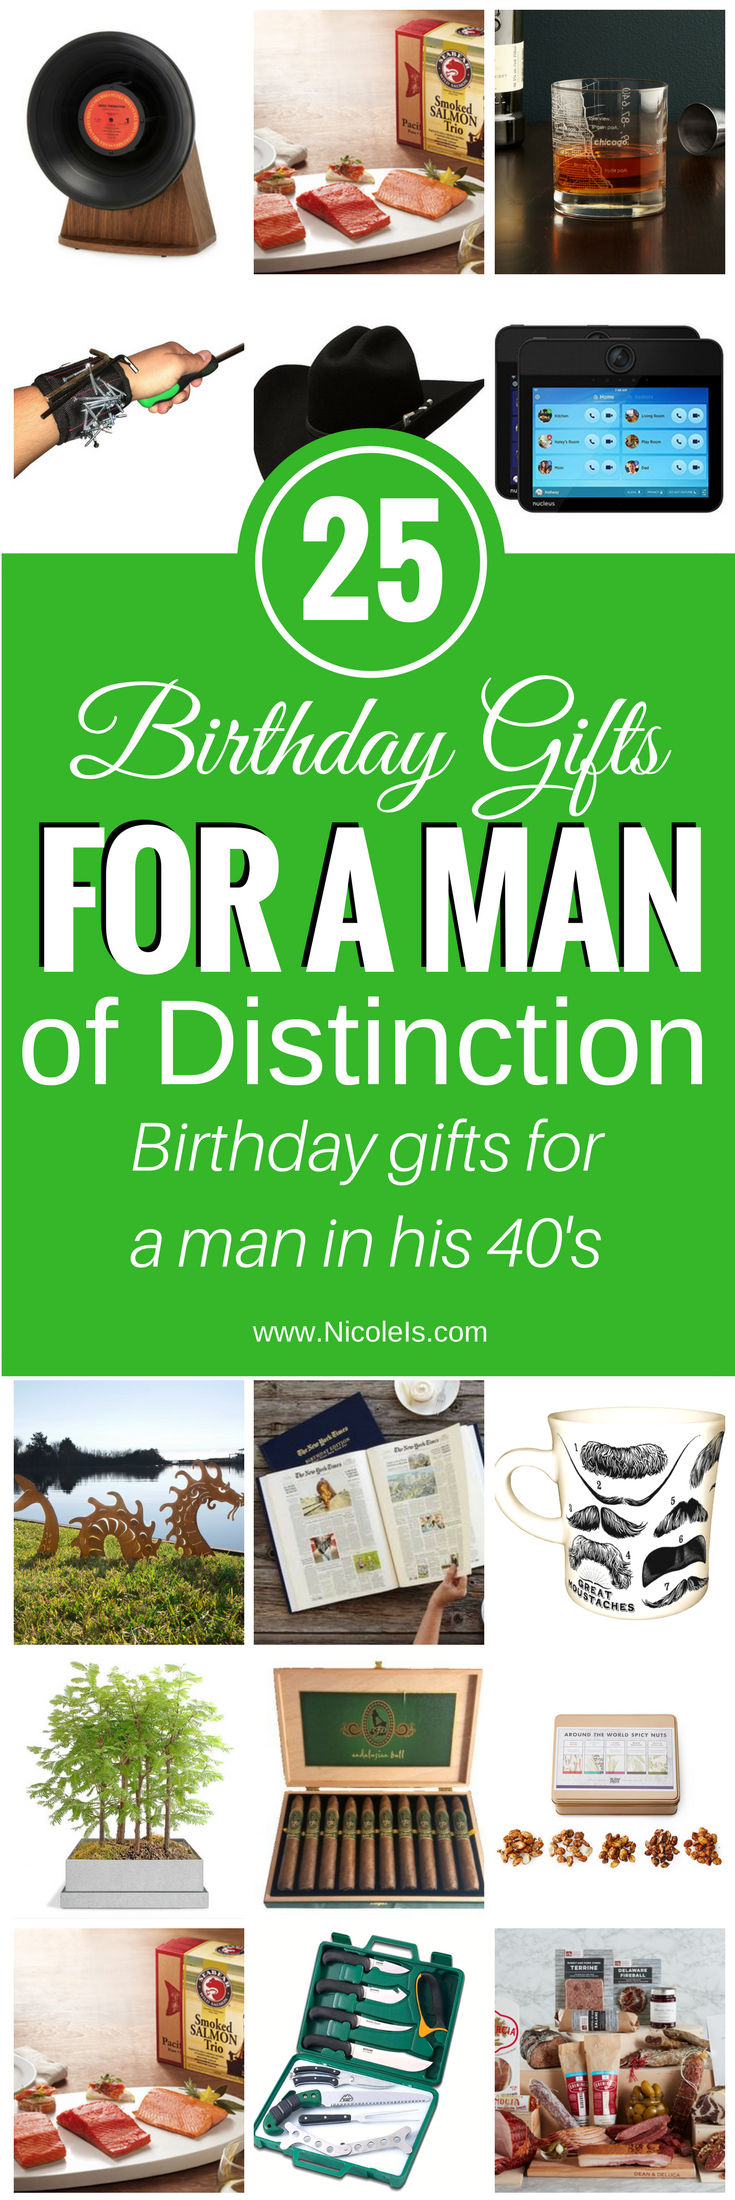 25 amazing birthday gifts for a man of distinction in 2018 gift